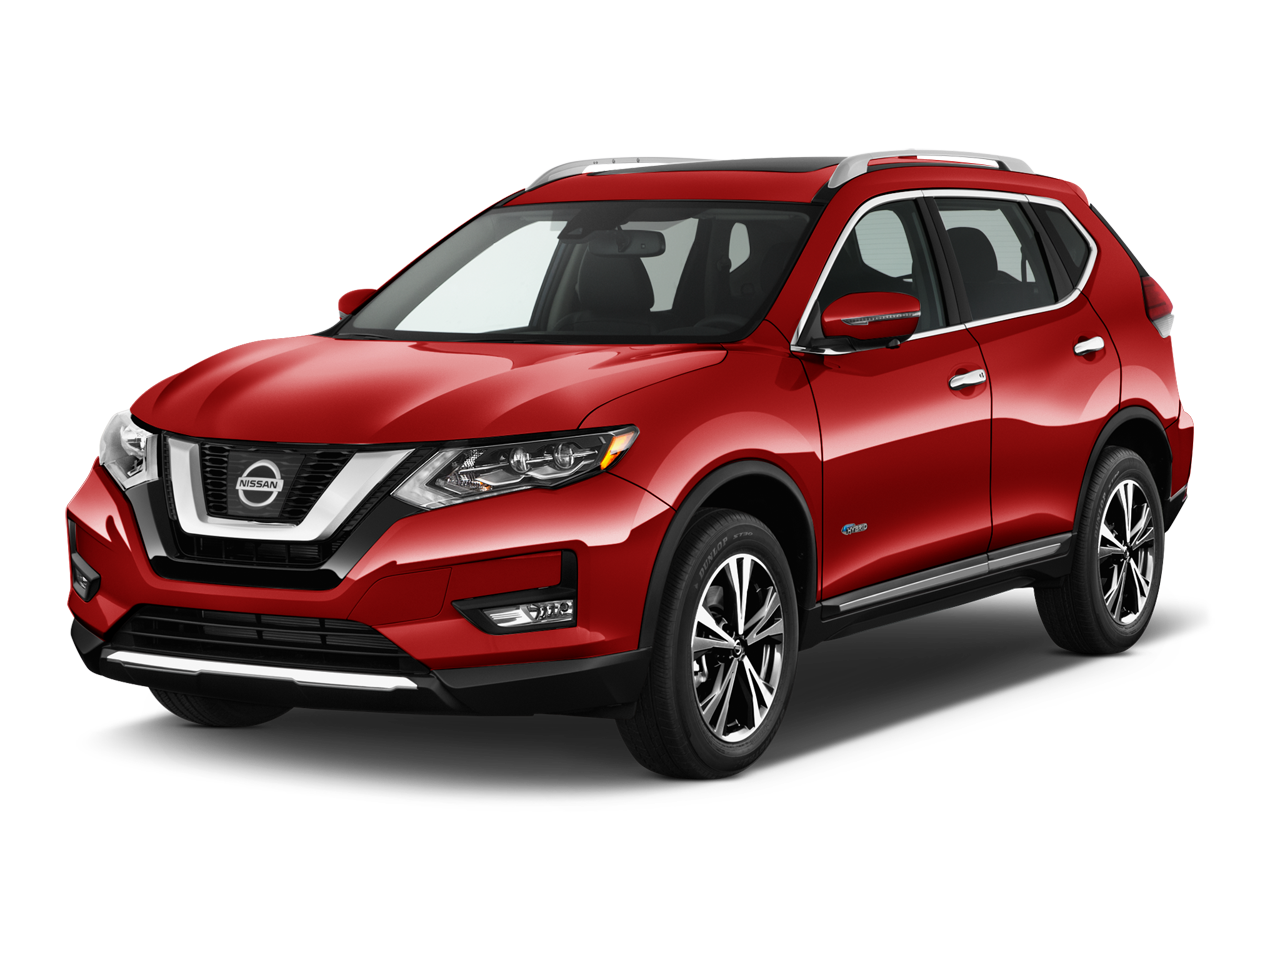 New 2017 Nissan Rogue Fwd Sl San Antonio Tx Near Boerne